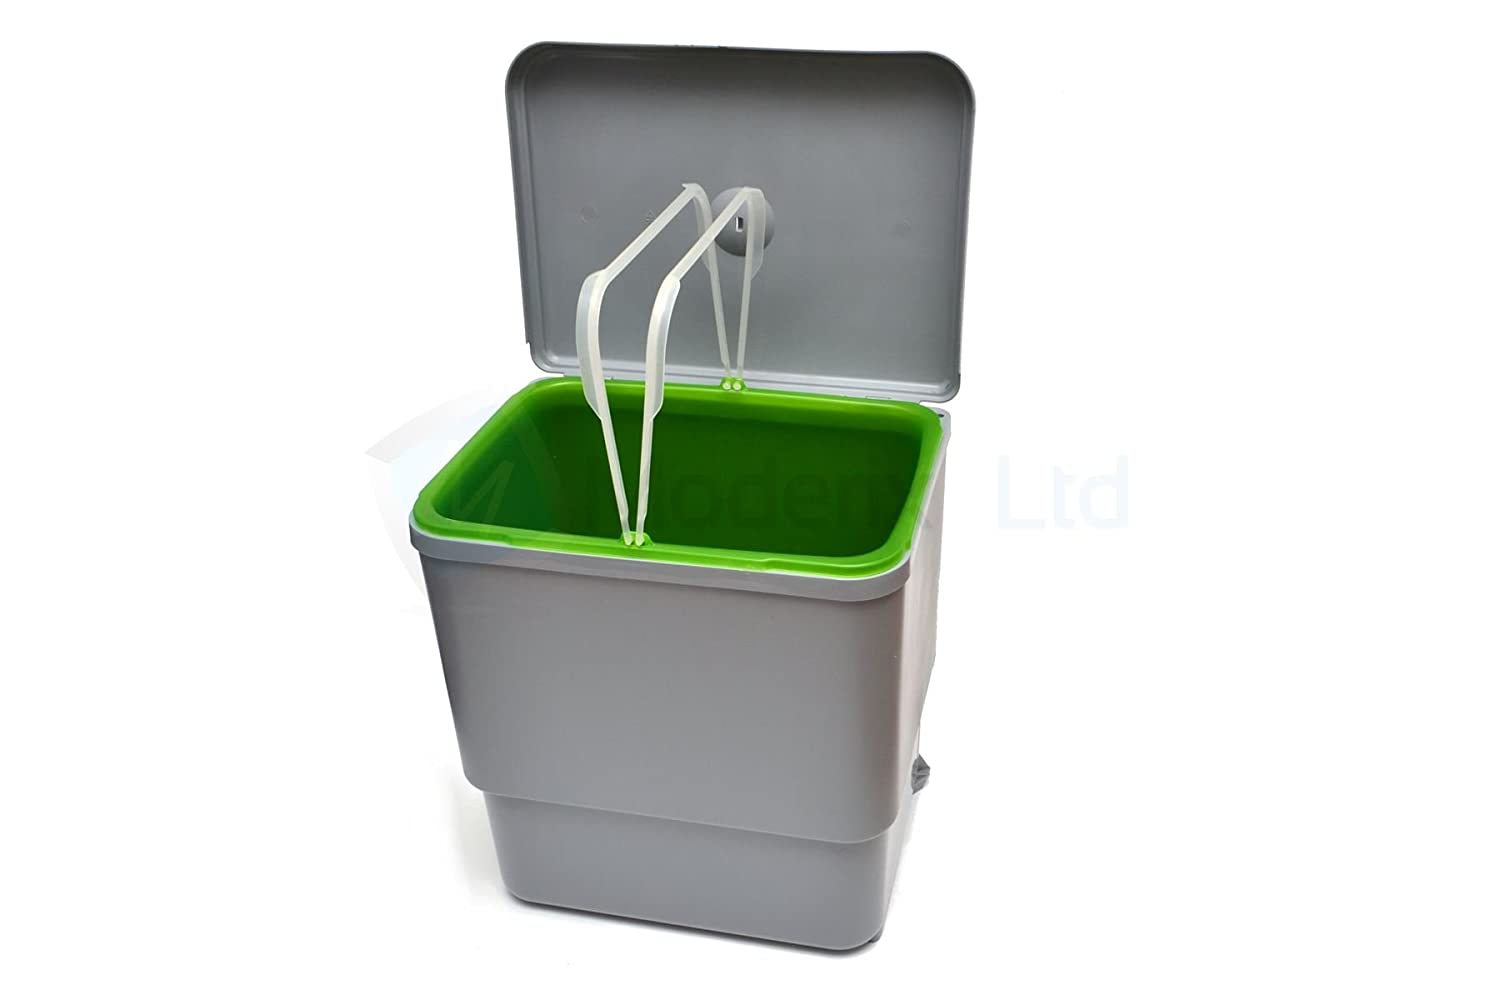 GTV Swing Out Pull Out Kitchen Waste Bin 16L: Amazon.co.uk: Kitchen ...